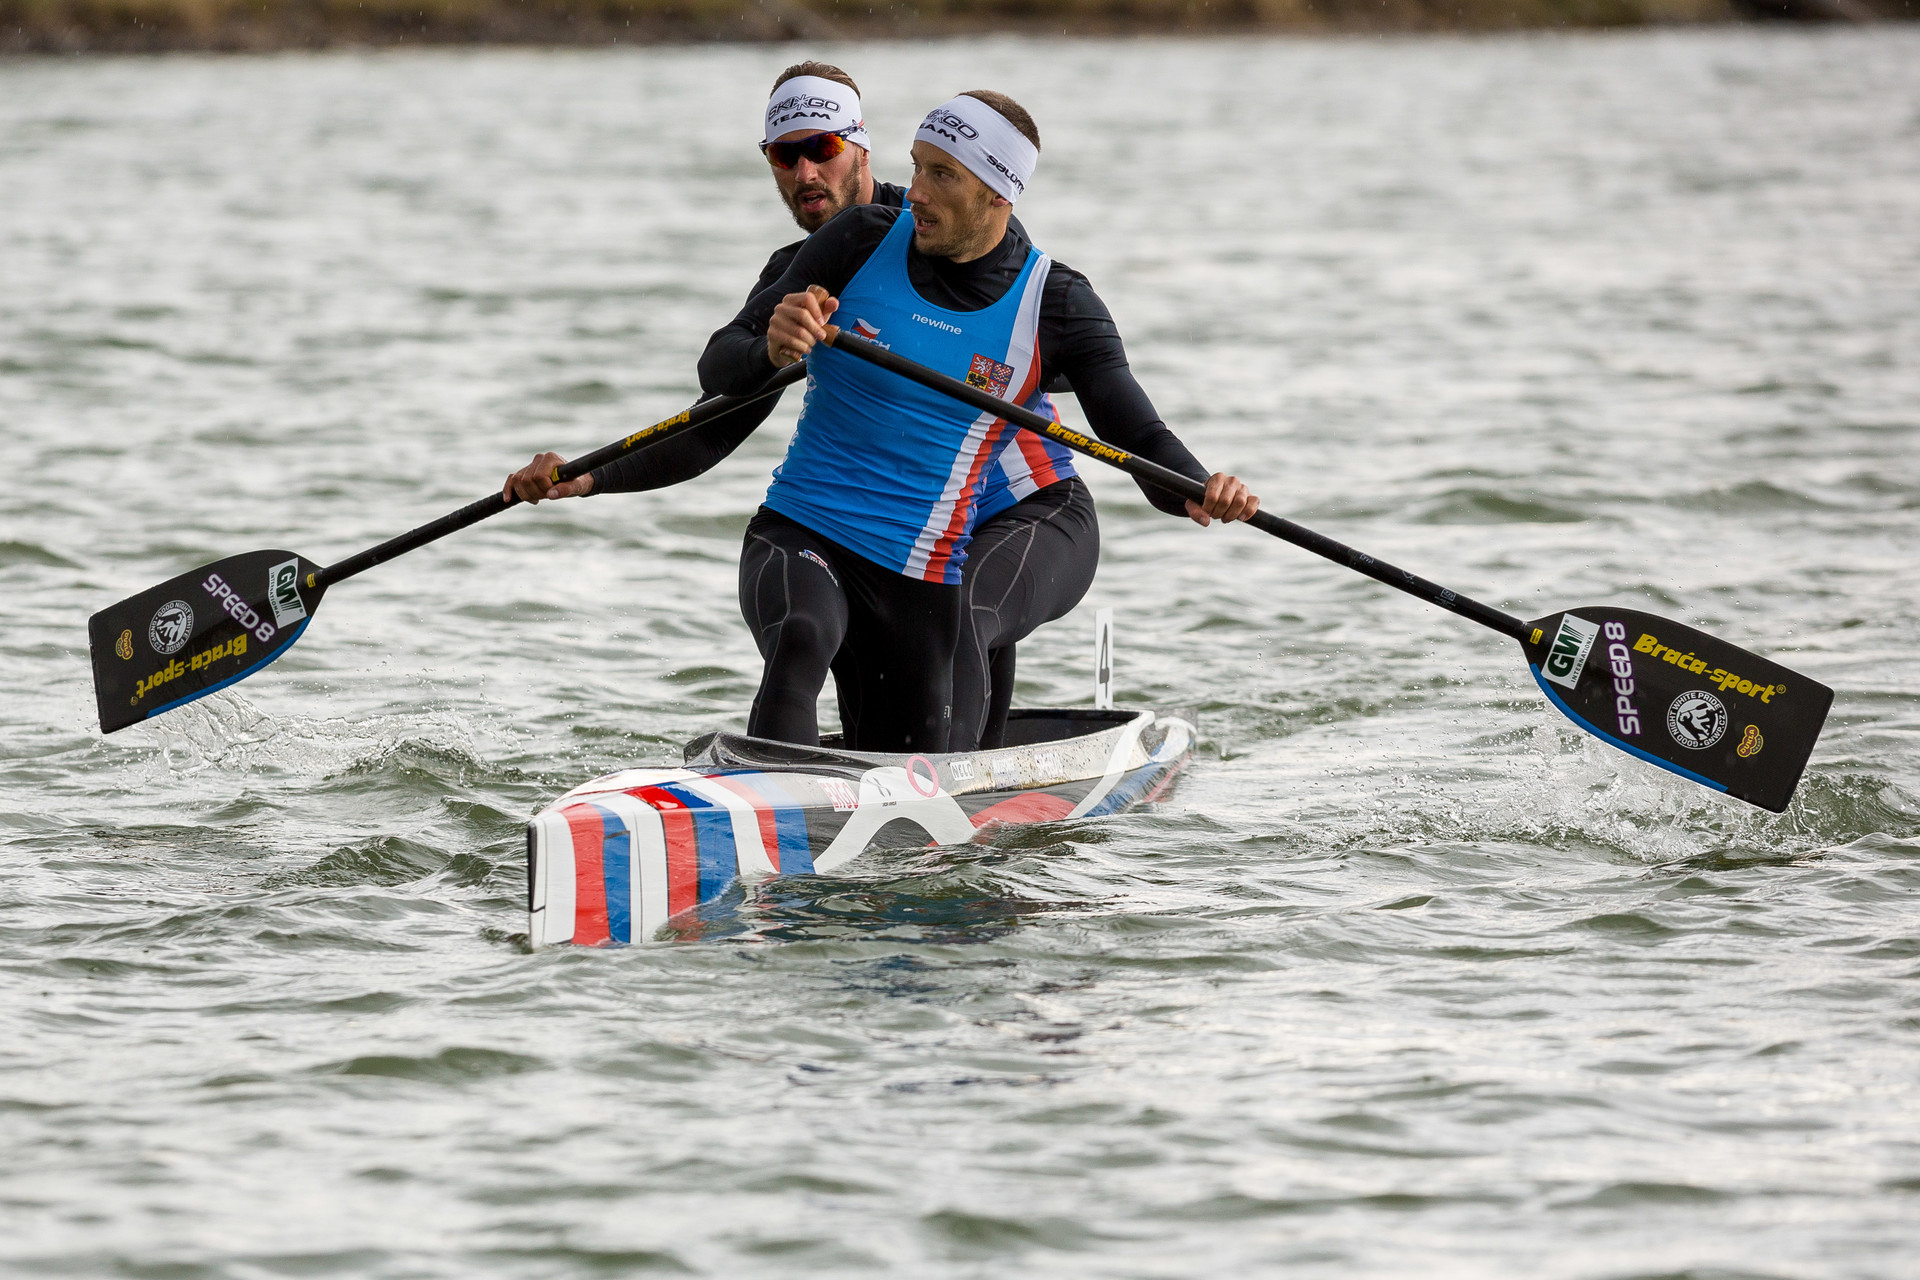 Eleven Canoe Sprint National Team Members Will Try To Fight For The Spot In Rio De Janeiro At Olympic Additional Qualification Race Duisburg